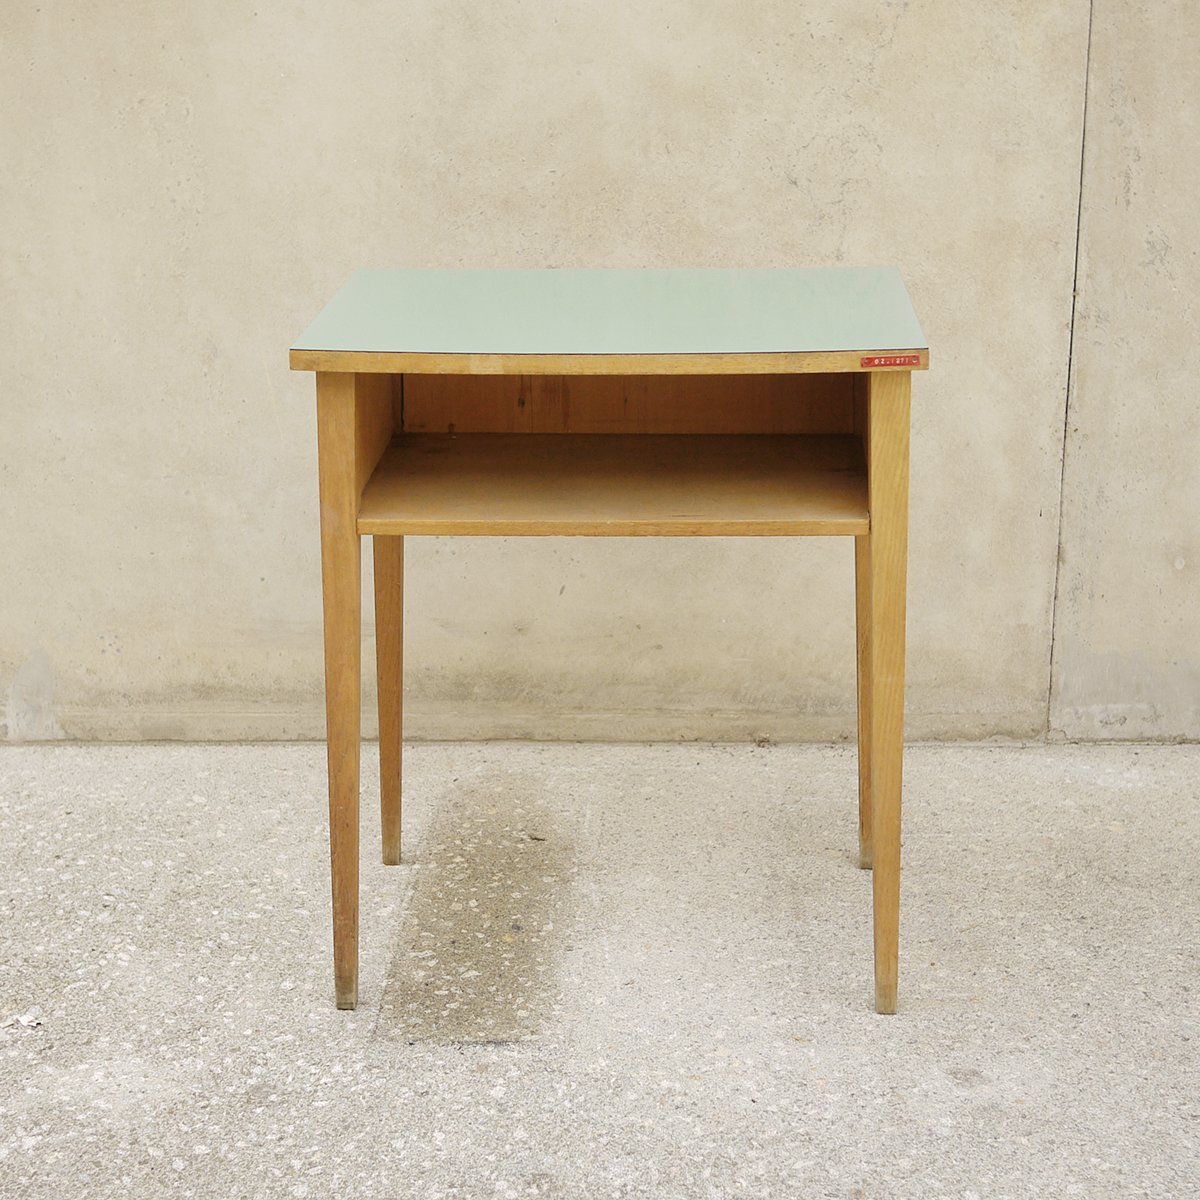 Wooden Side Table Vintage Wooden Side Table With Green Top For Sale At Pamono